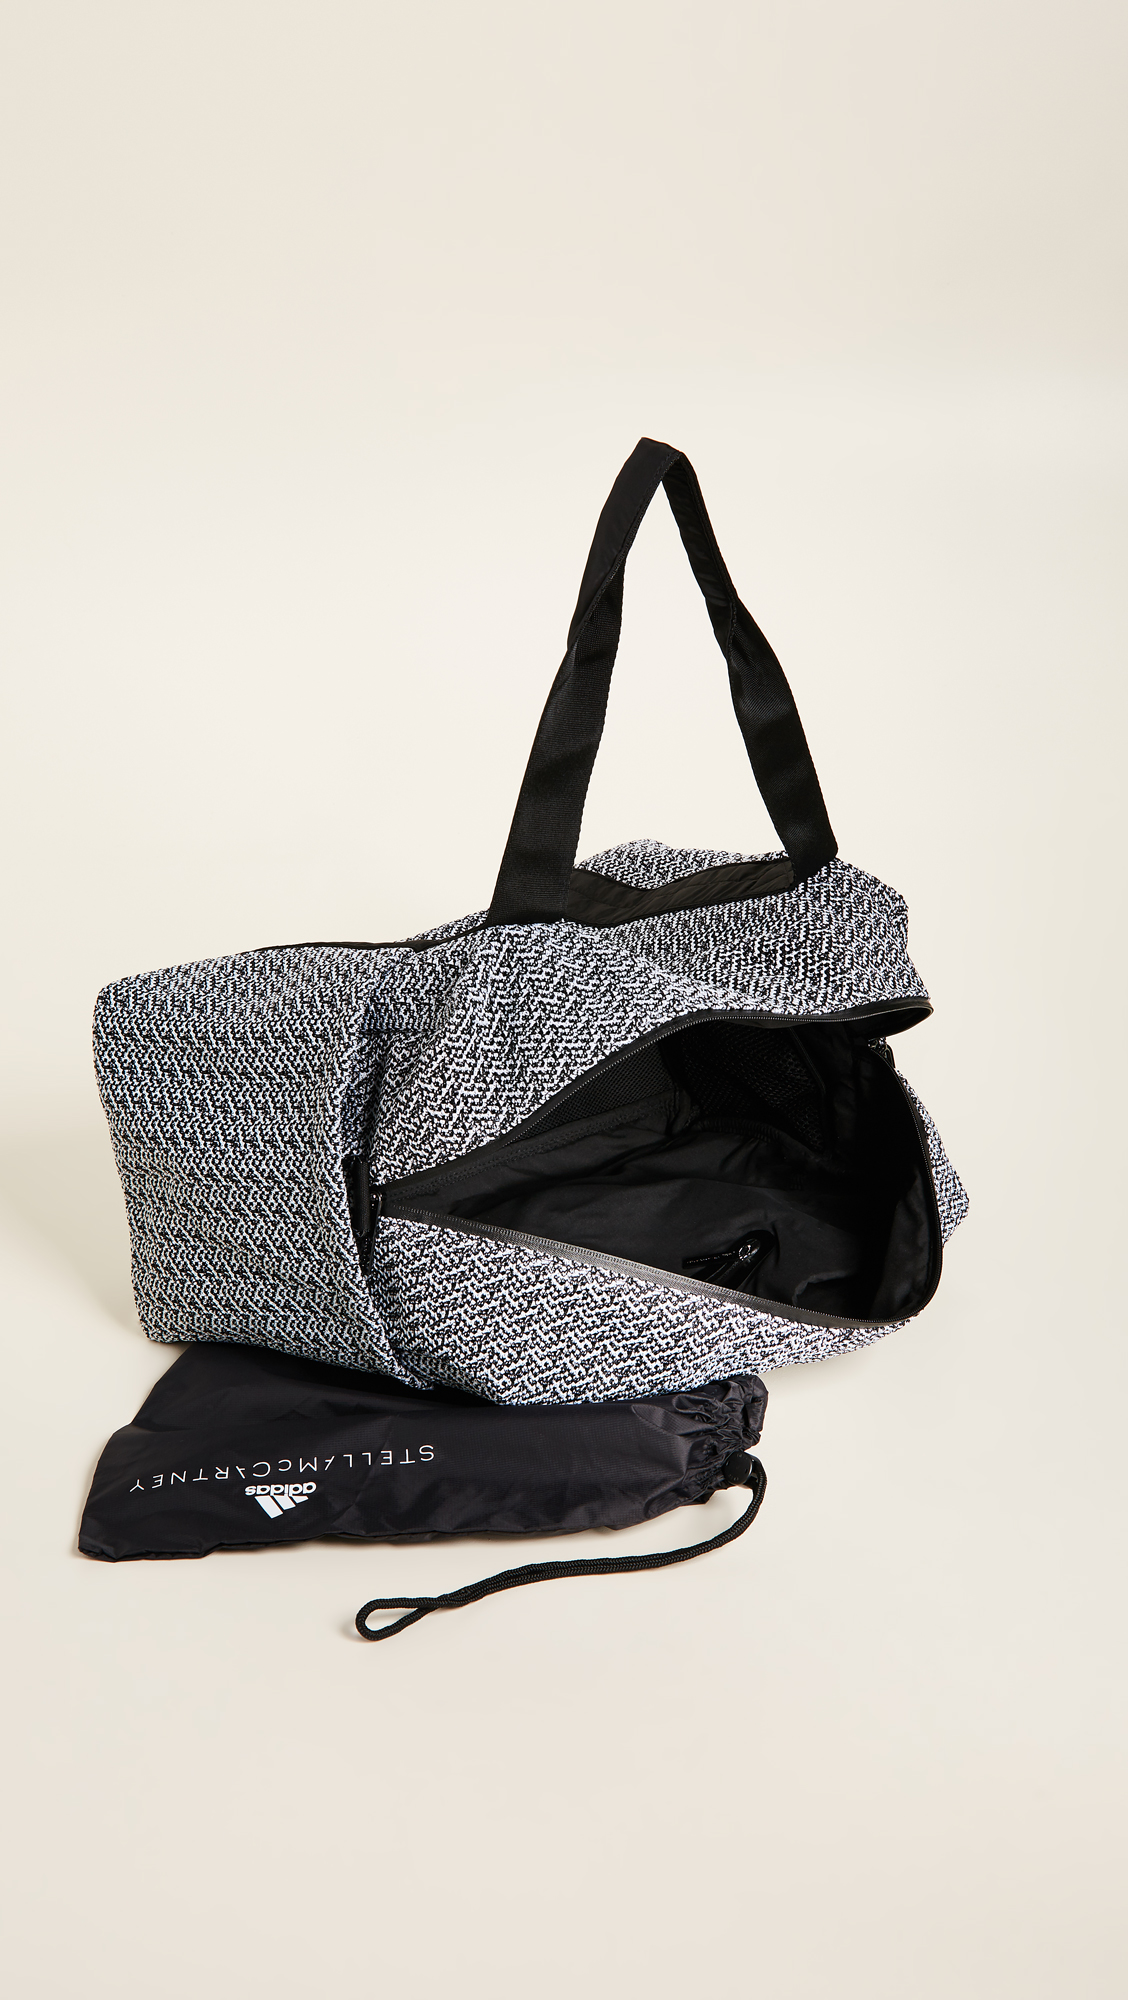 c7a3f6c0bf adidas by Stella McCartney Shipshape Athletic Bag